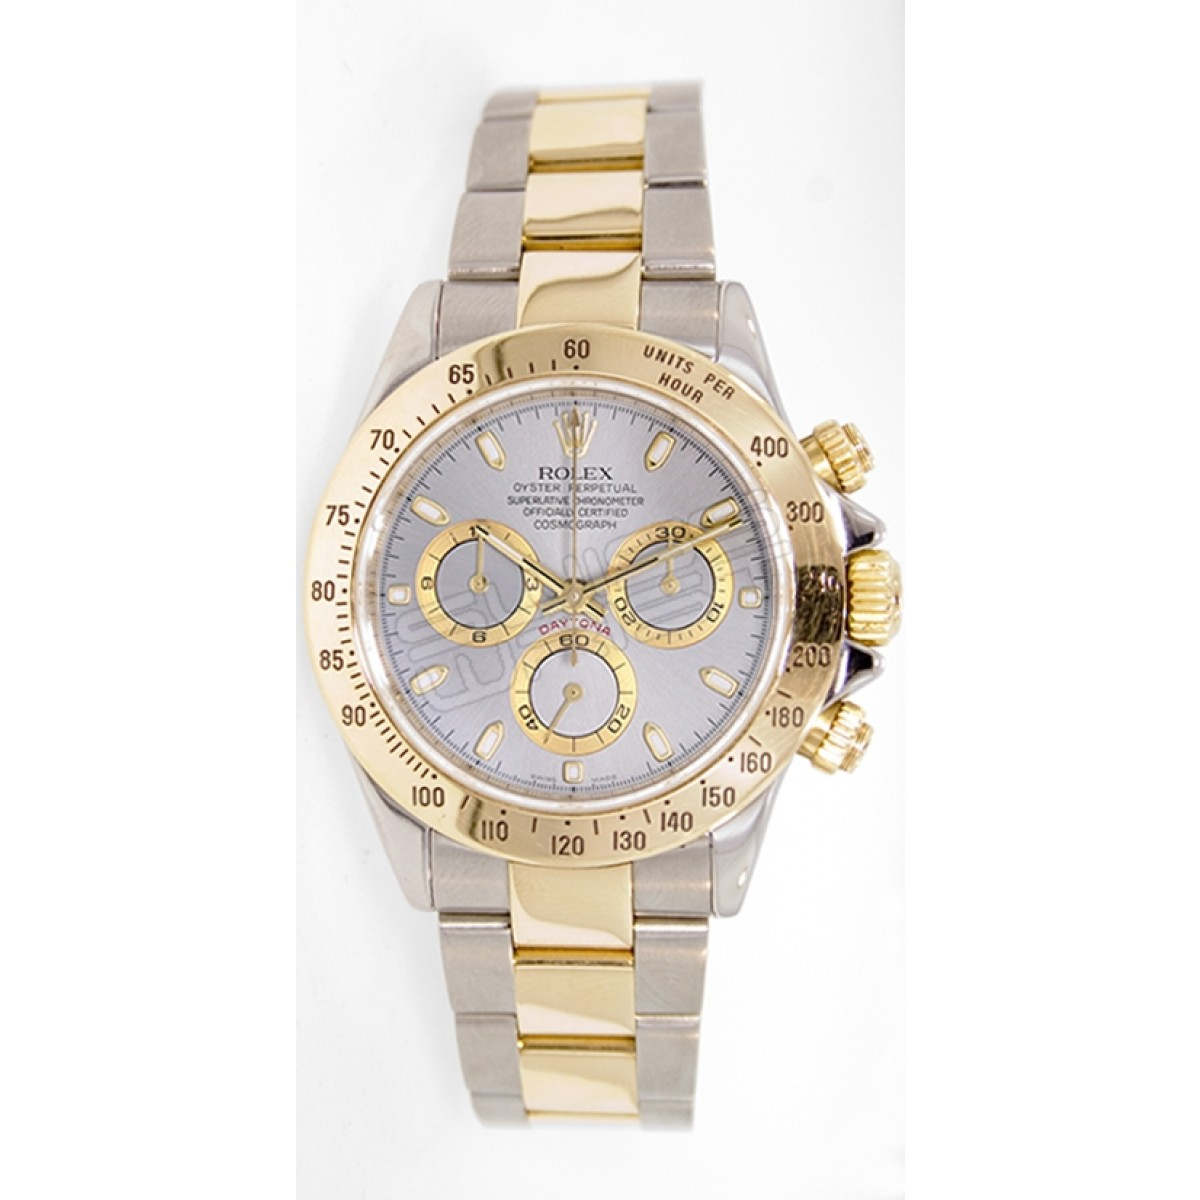 Rolex Daytona 116523 Stainless Steel 18k Yellow Gold Silver Face